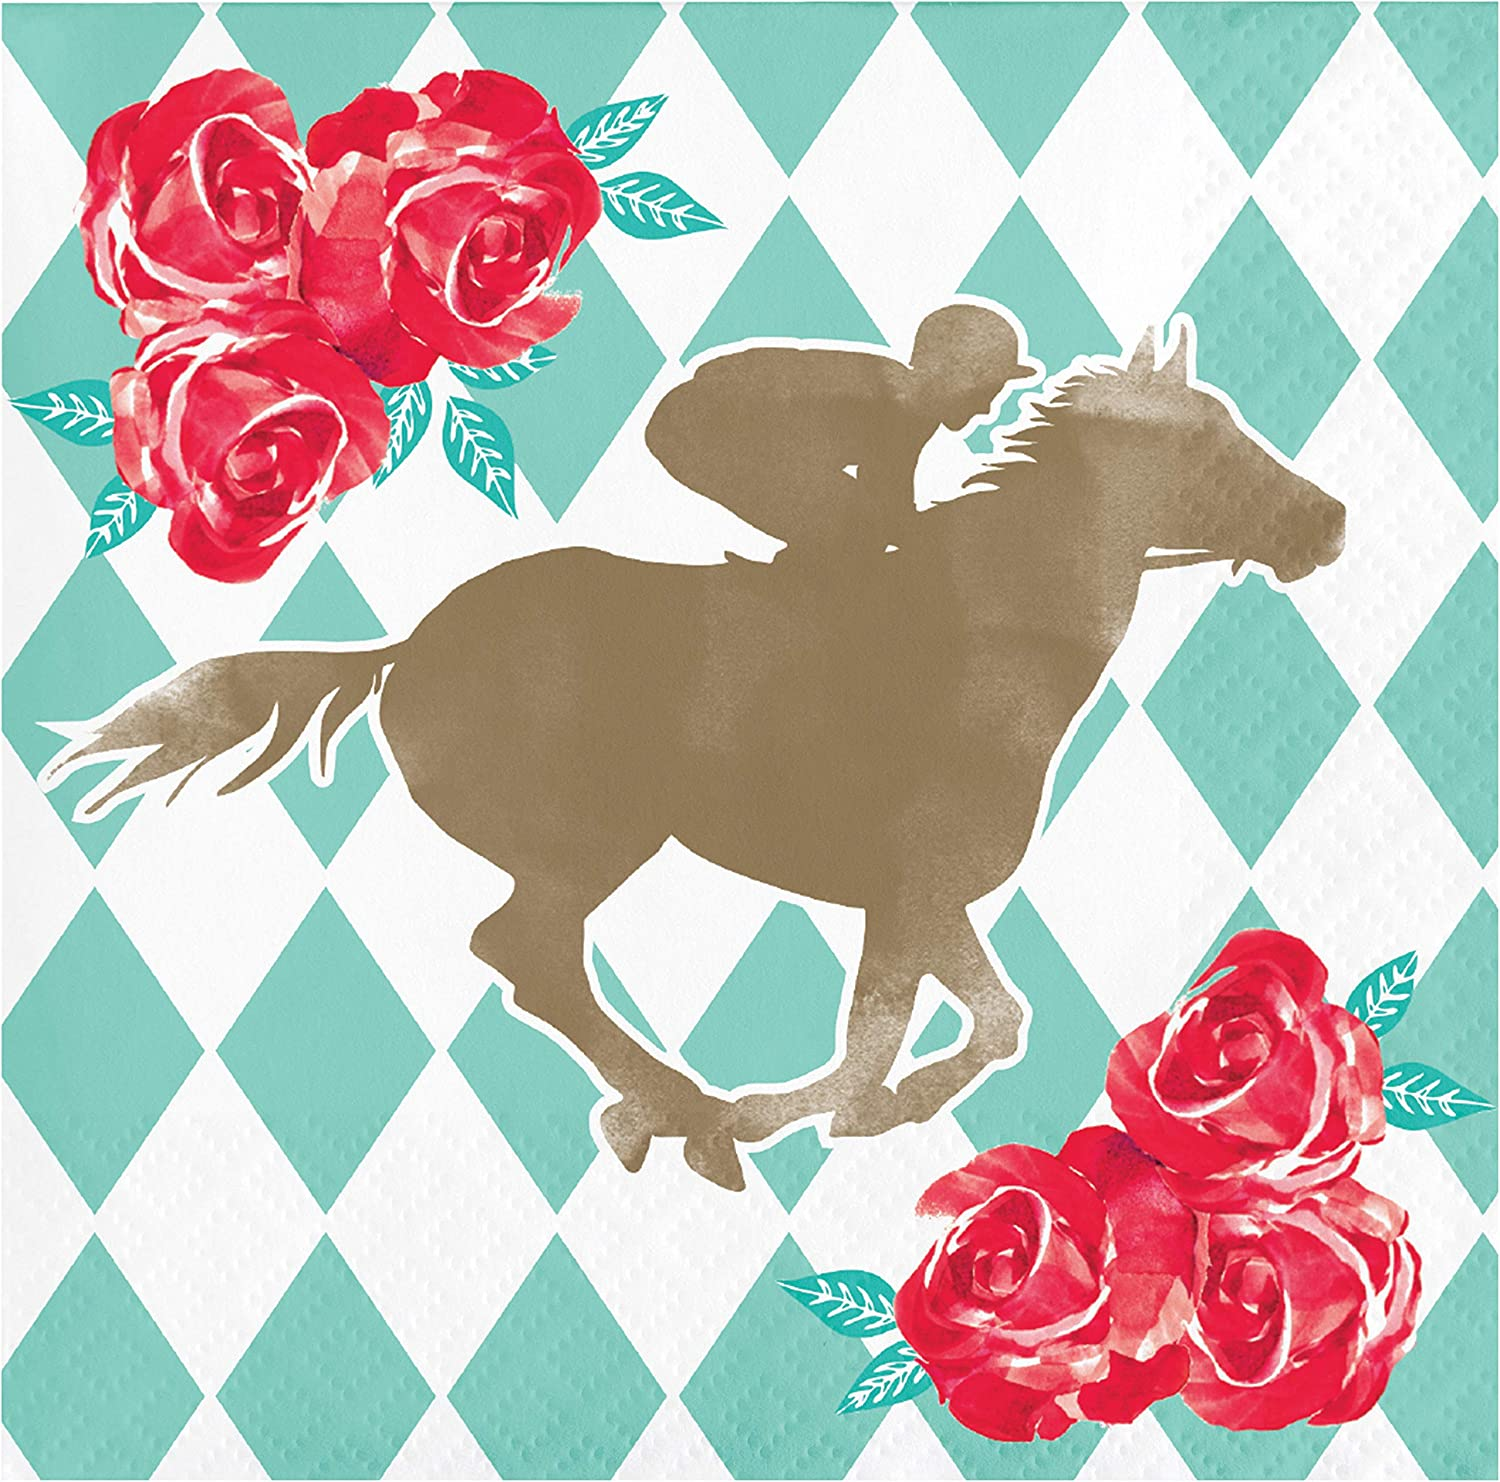 Horse Racing and Kentucky Derby Beverage Napkins, 48 ct